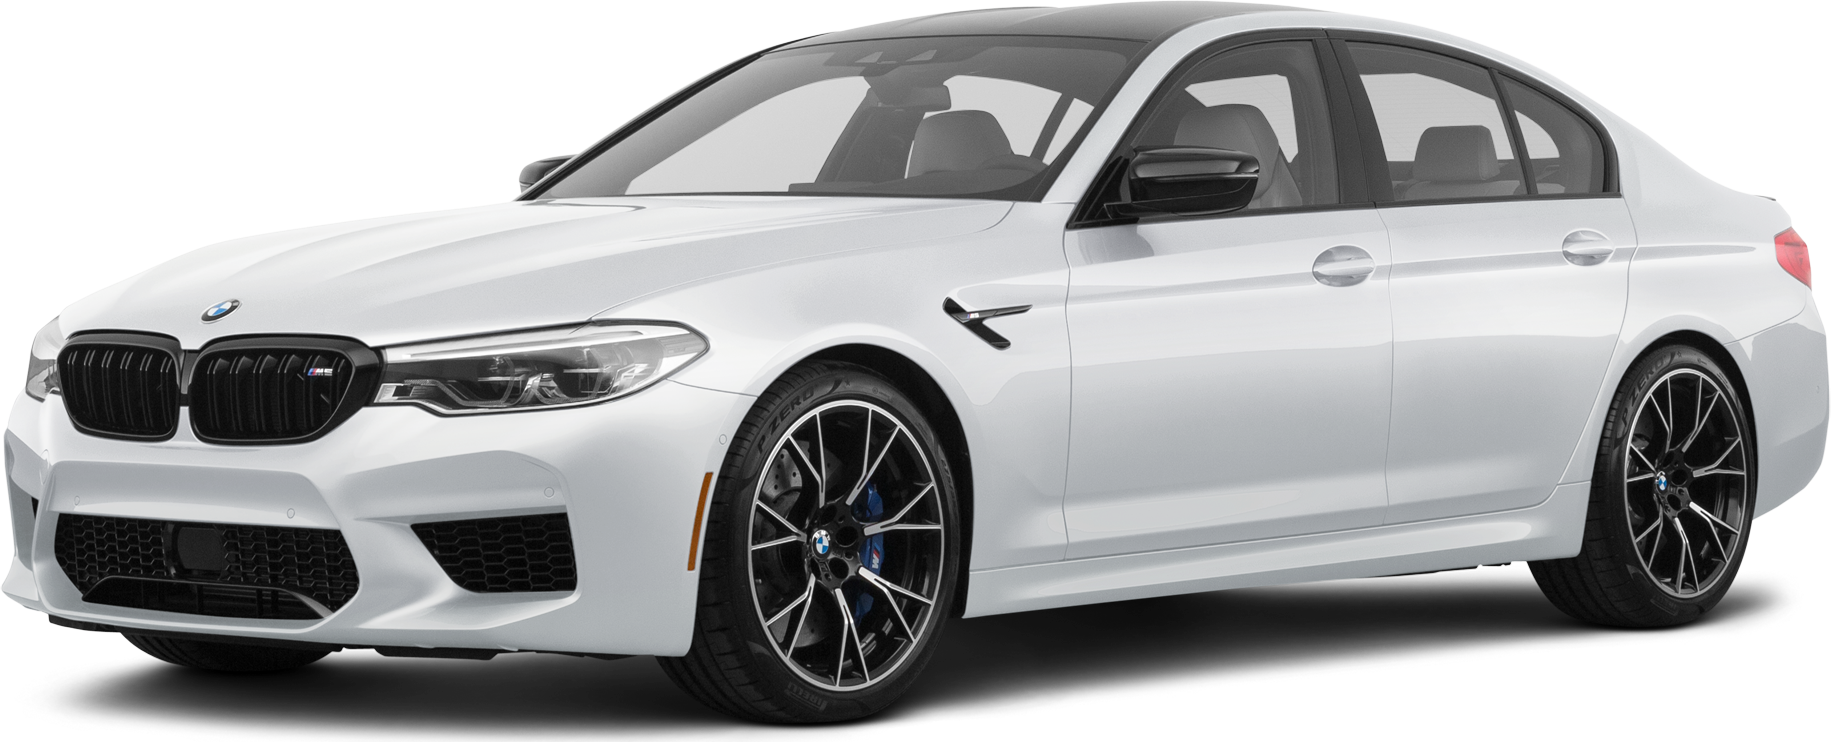 2019 Bmw M5 Prices Reviews Pictures Kelley Blue Book